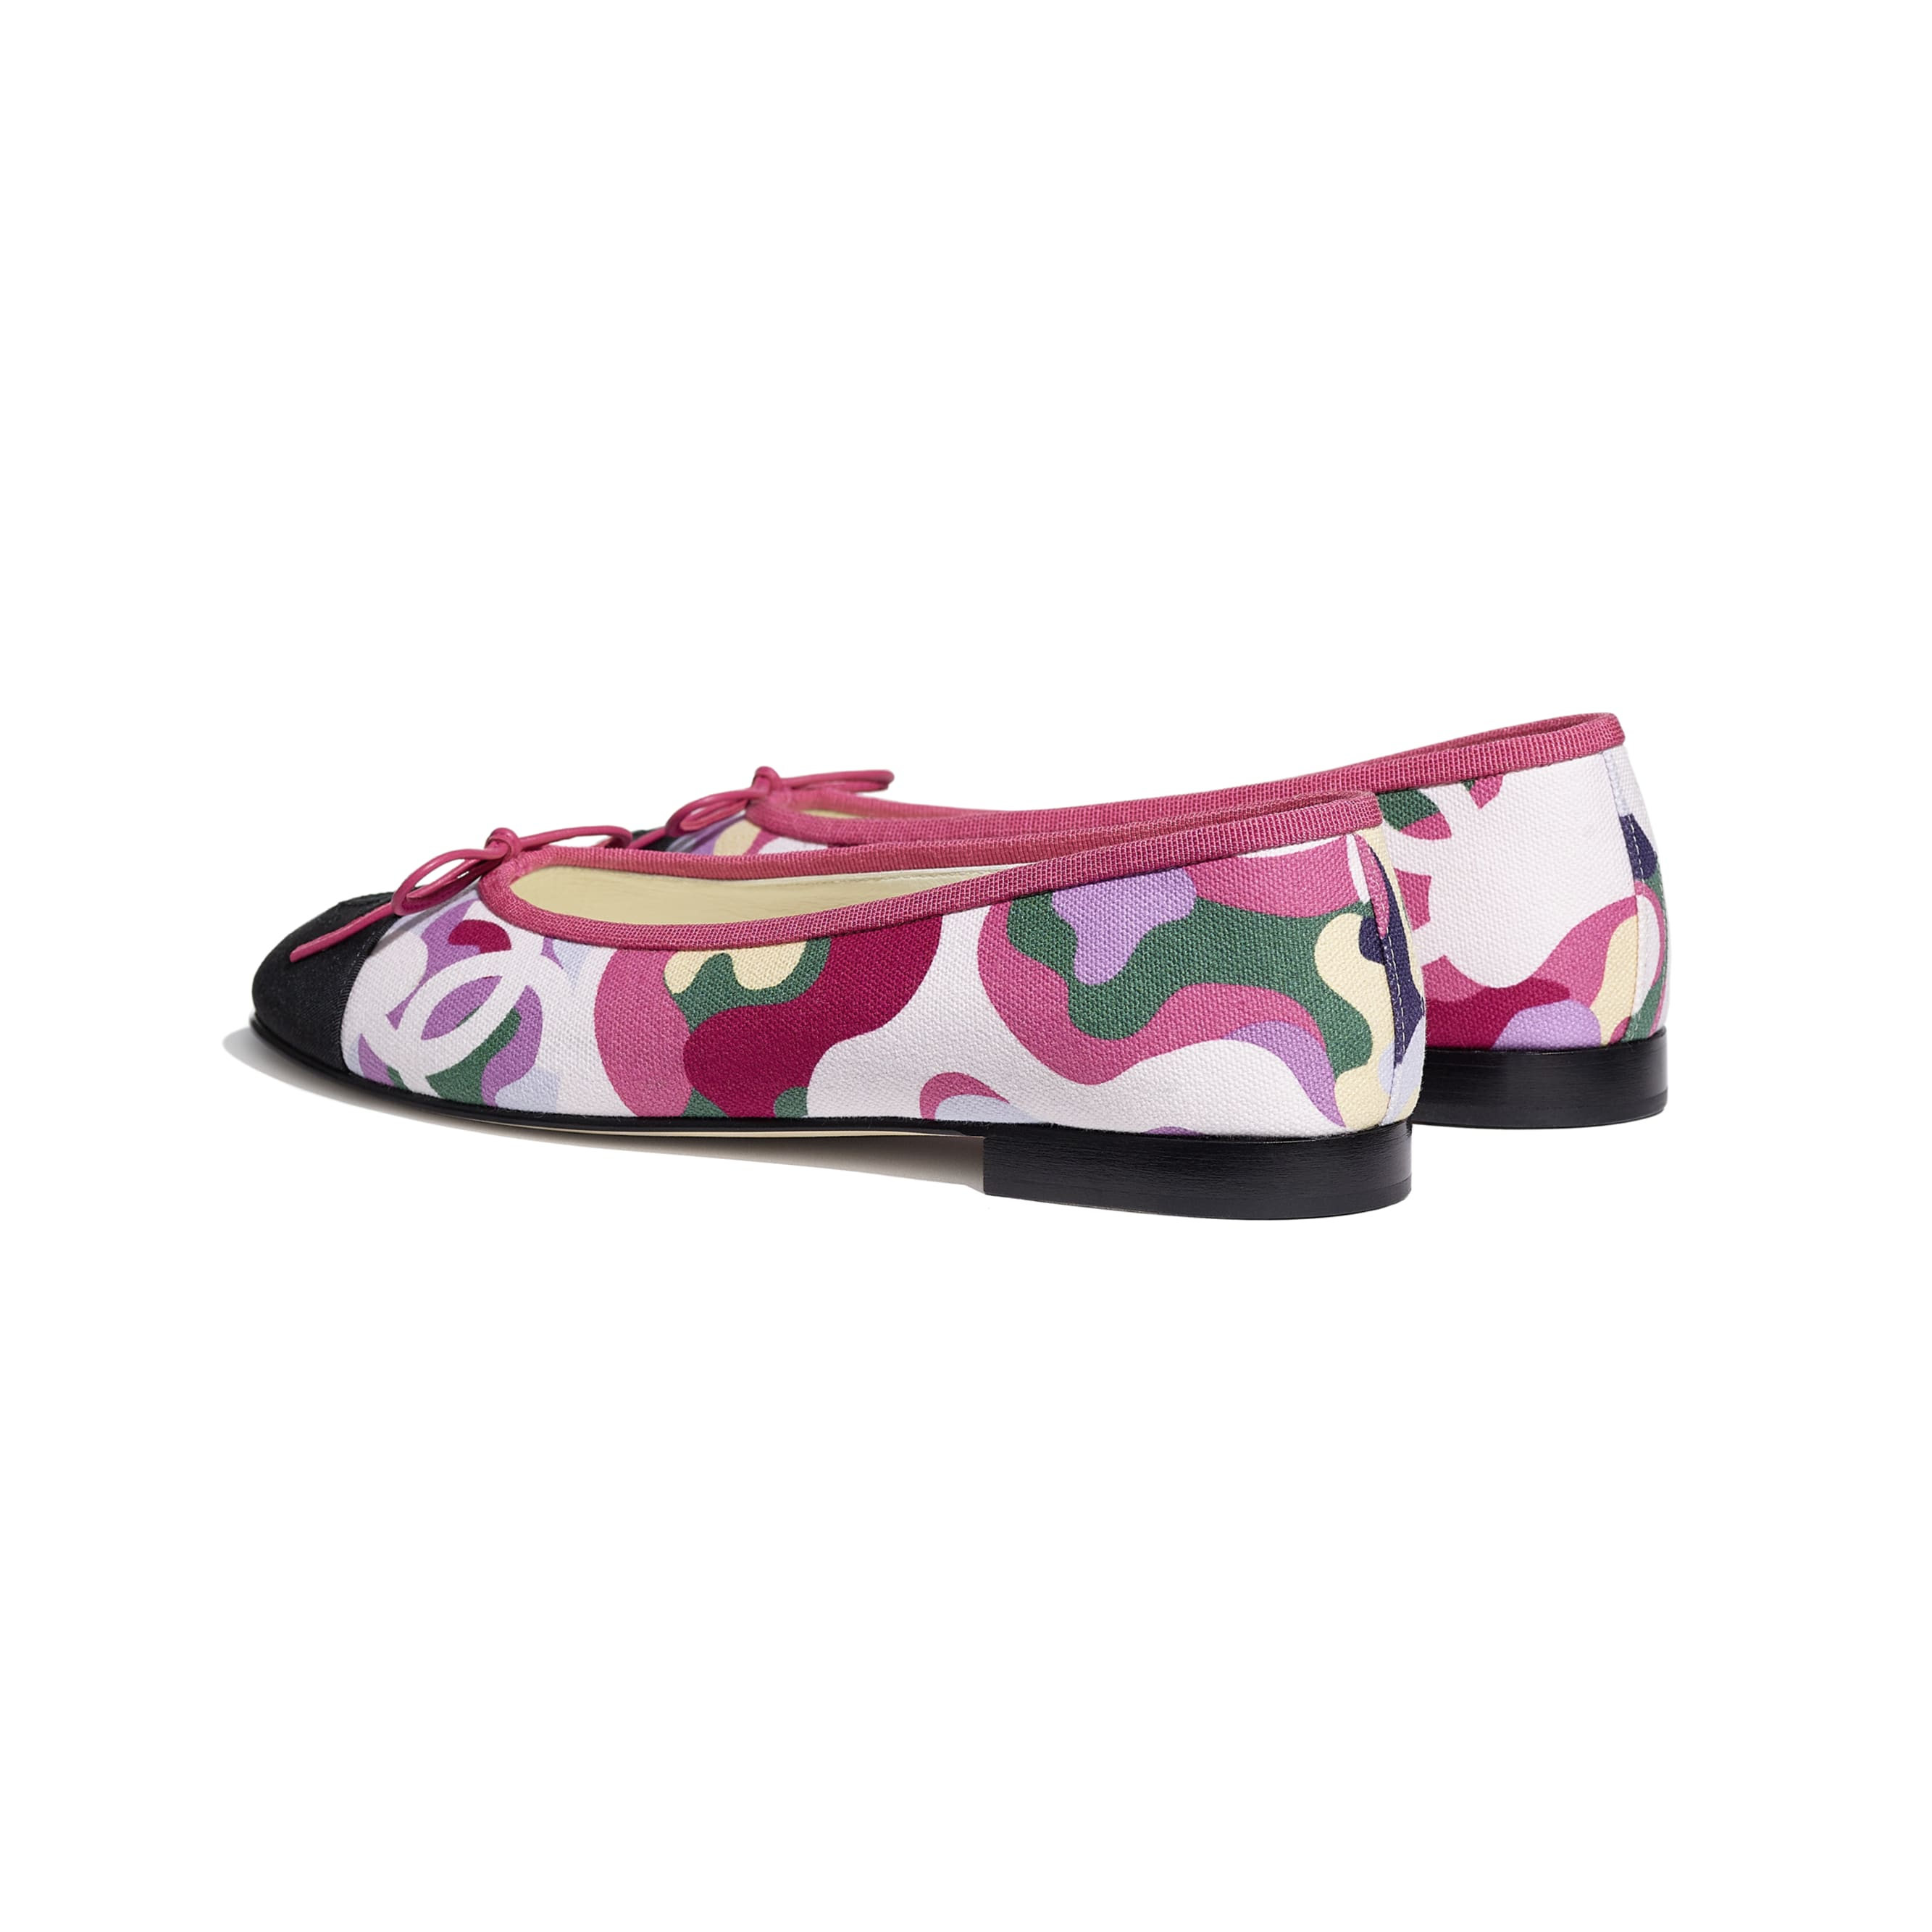 Flats - Pink, Green & Black - Cotton & Grosgrain - CHANEL - Other view - see standard sized version